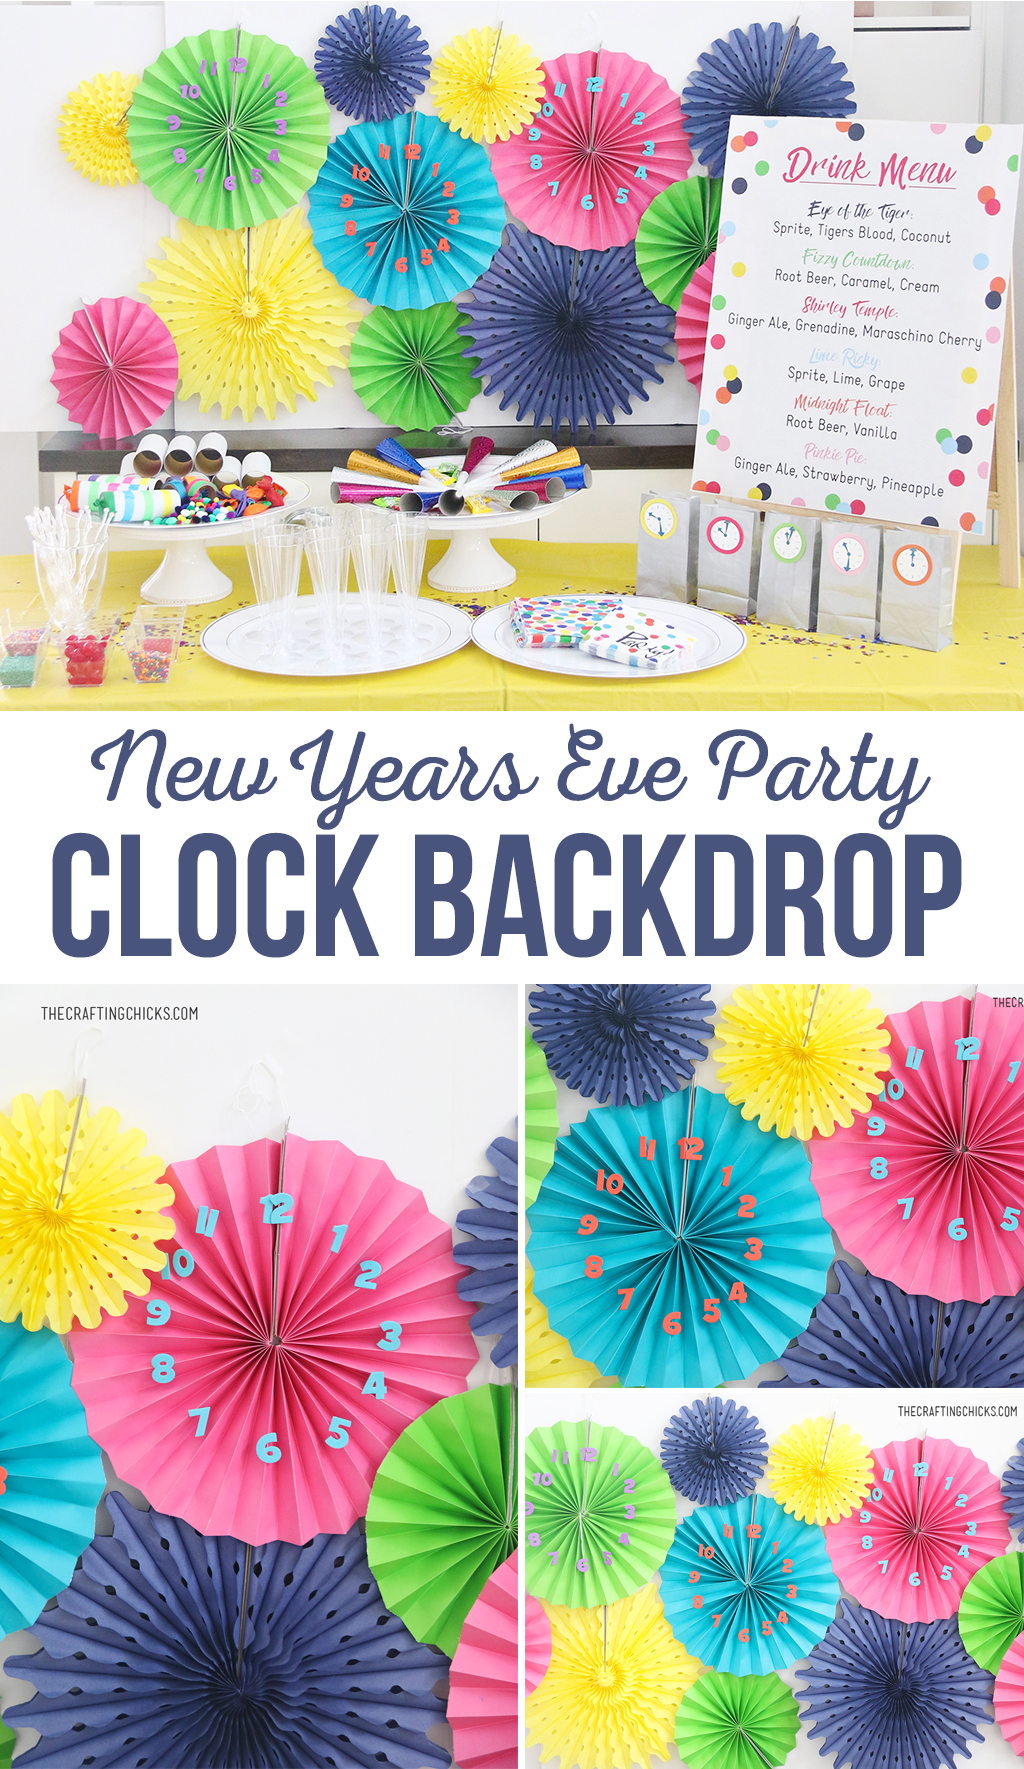 DIY New Year's Eve Party Clock Backdrop